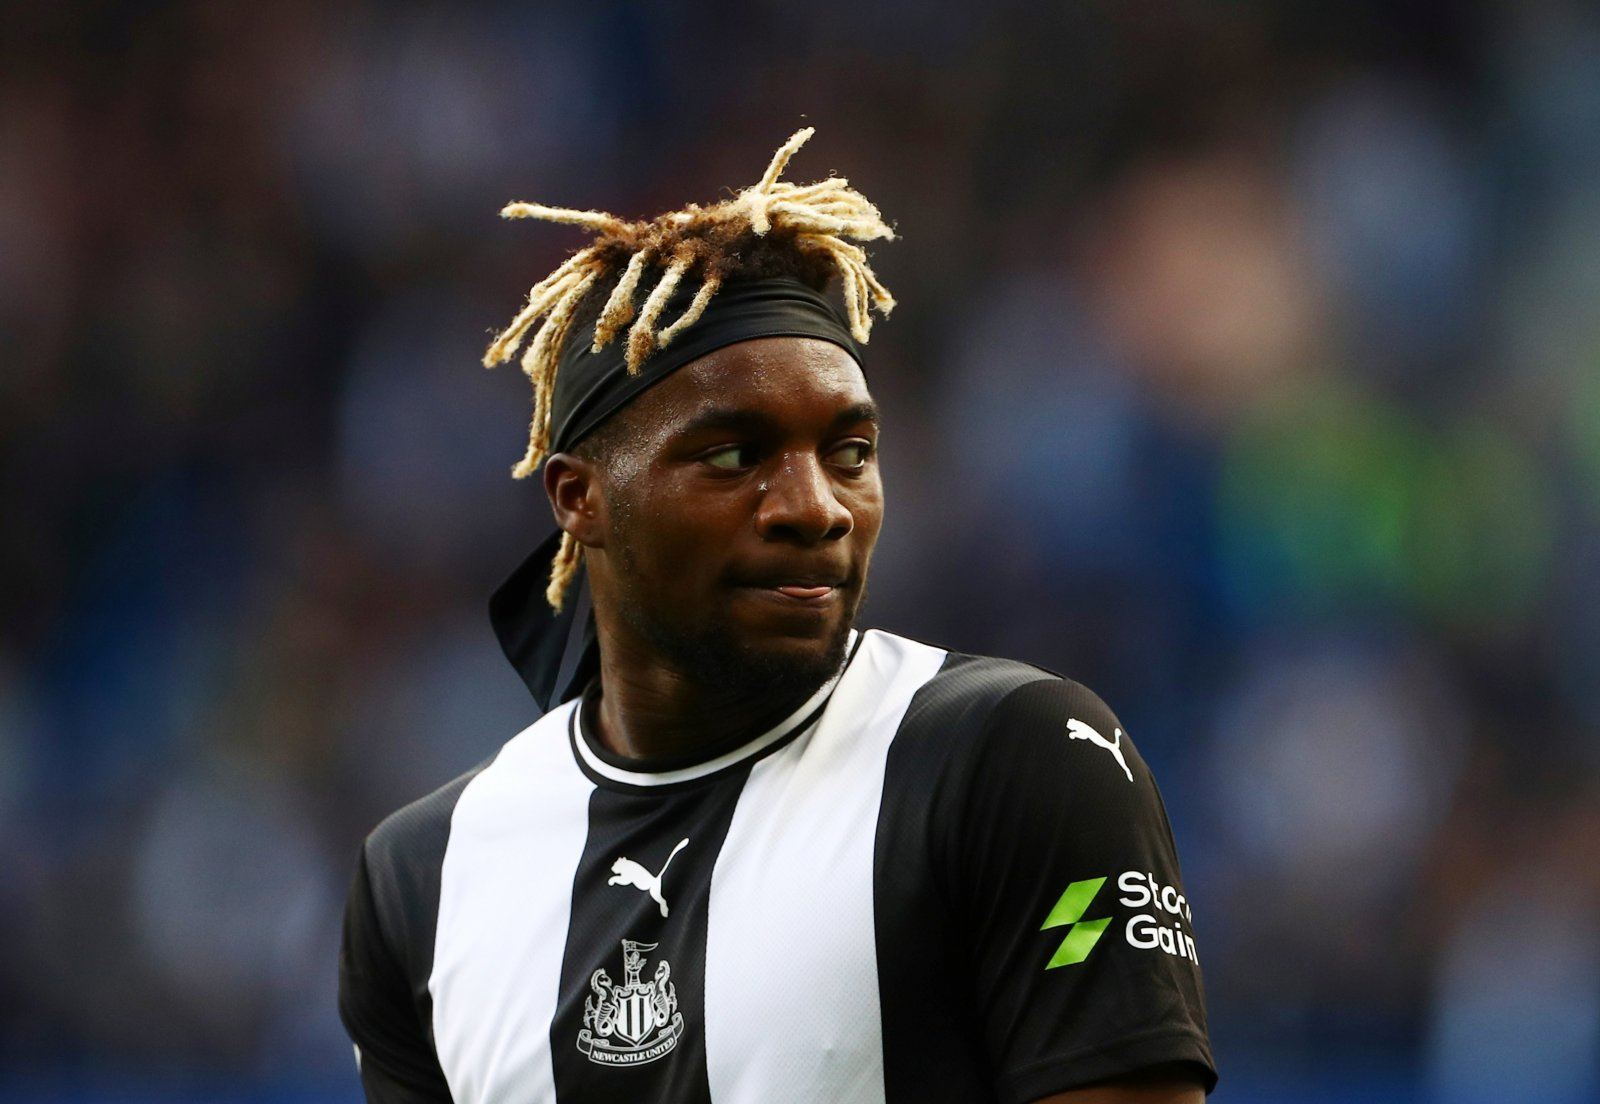 Newcastle United: Fans compare Hatem Ben Arfa and Allan Saint-Maximin as most exciting players